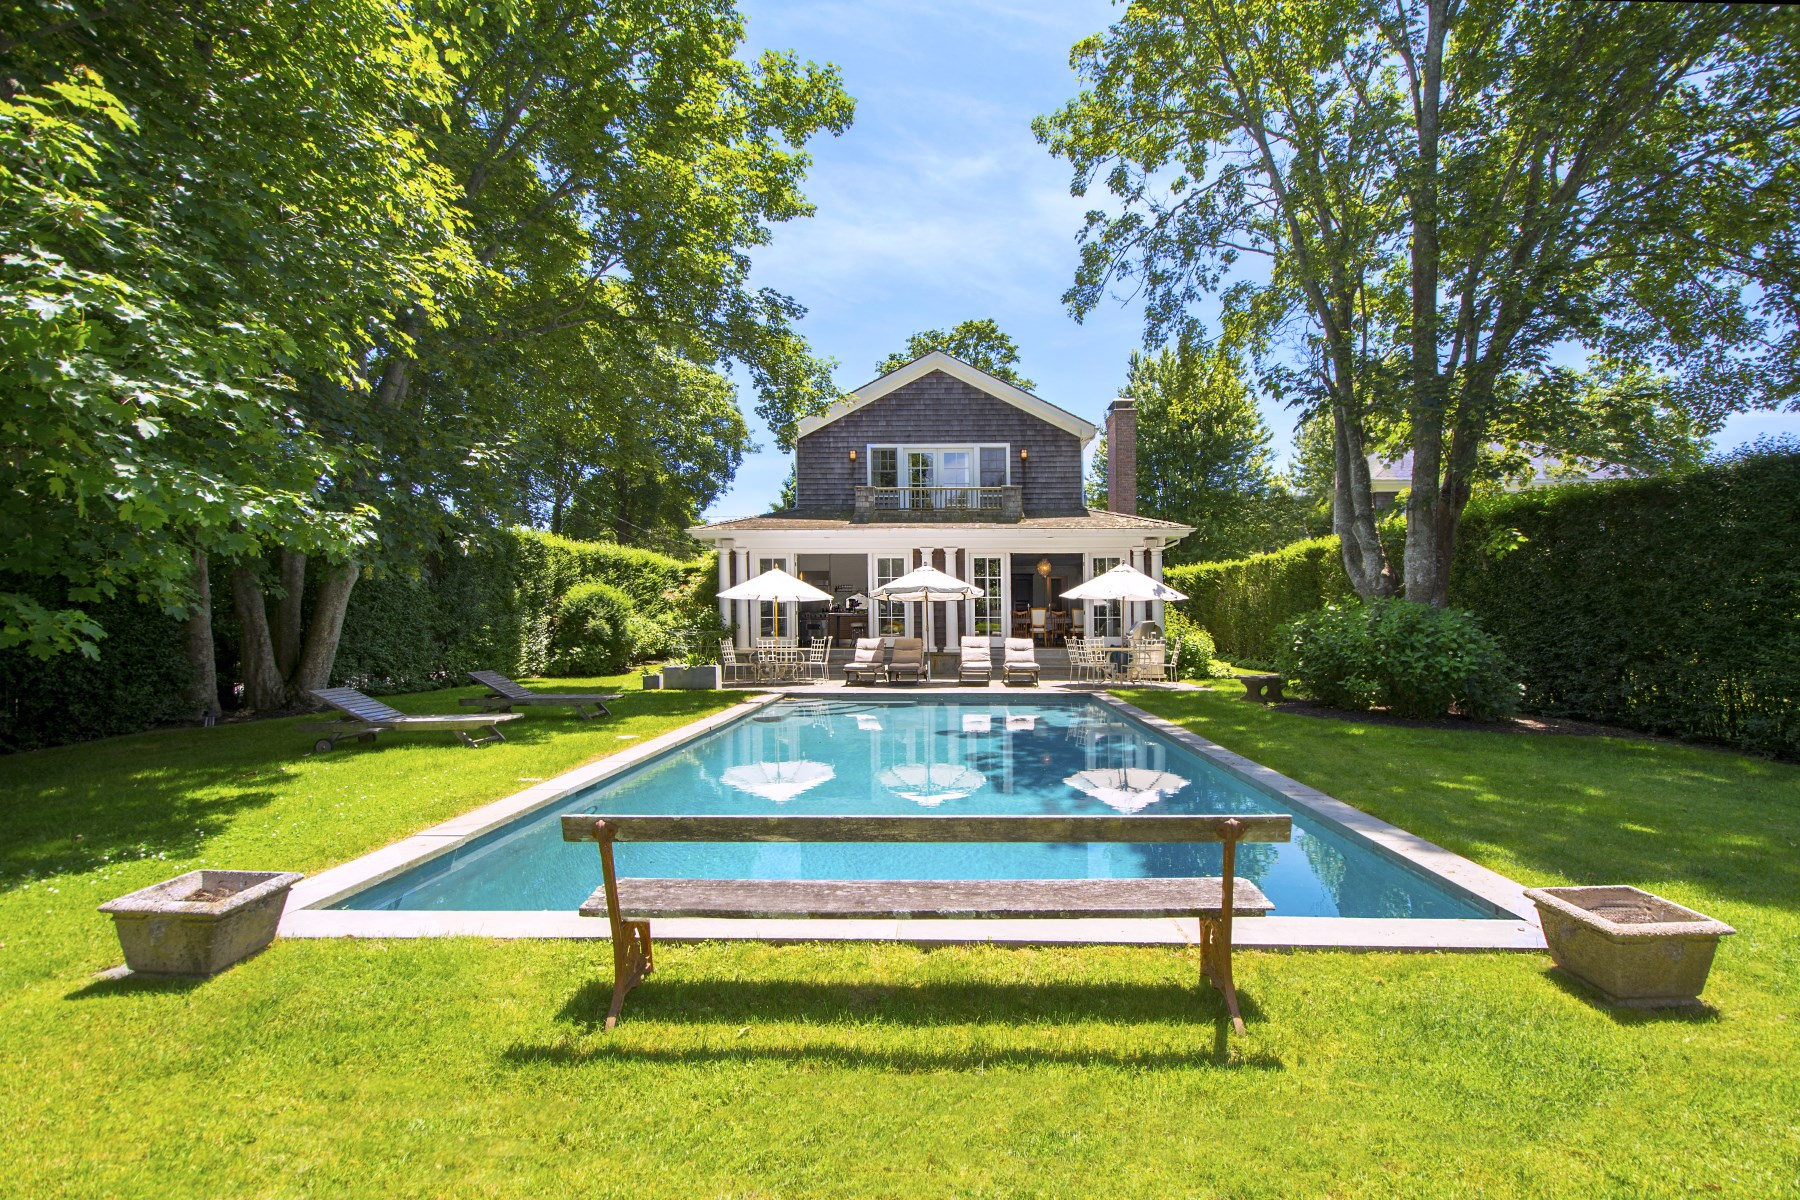 Single Family Home for Sale at Traditional Village Home with Pool 97 Pelletreau Street Southampton, New York, 11968 United States